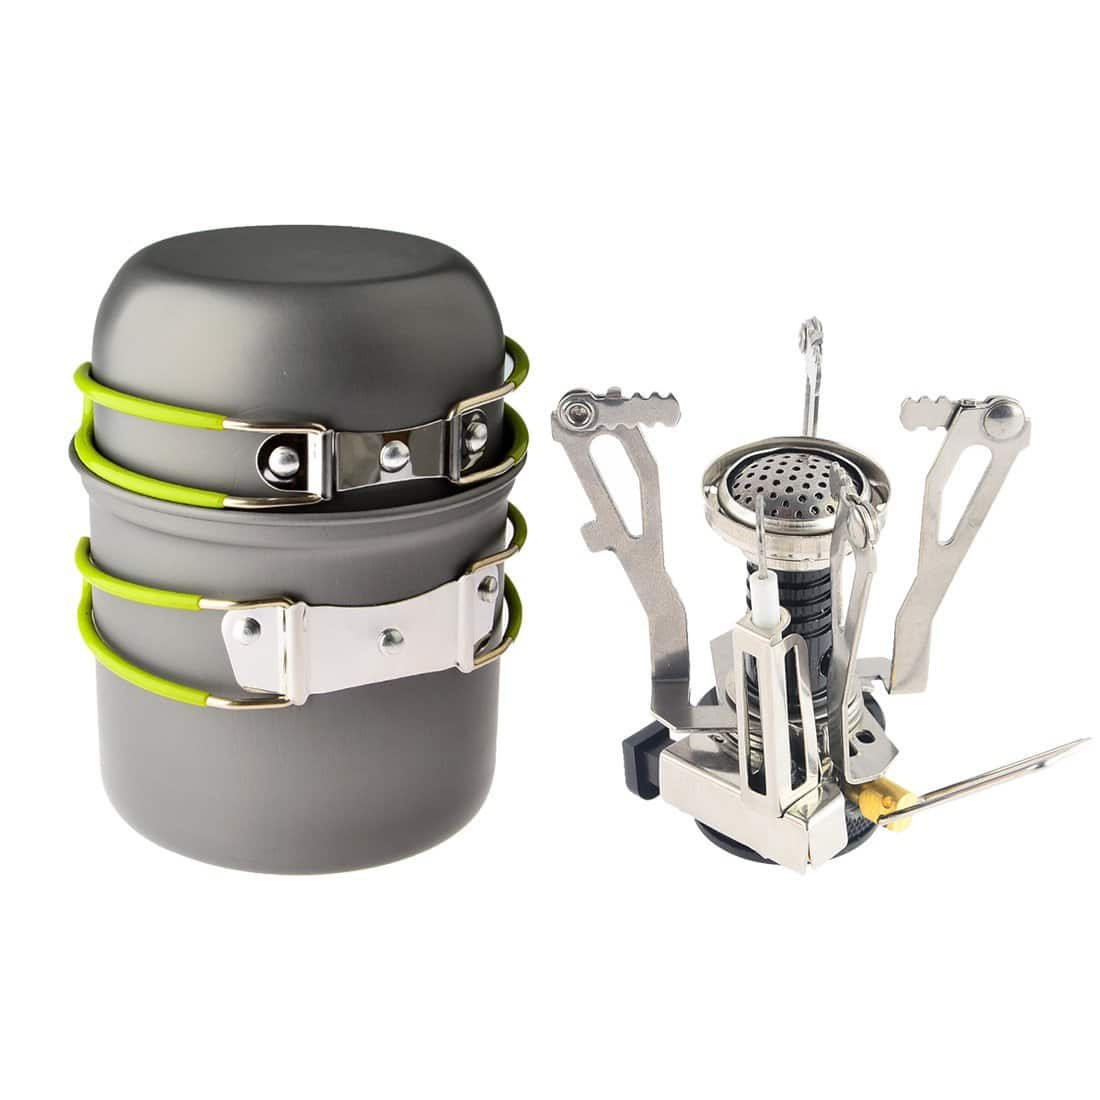 CAMP STOVE + COOKWARE SET 2 pcs piezo ignition canister $6 OFF COUPON camping outdoors FREE SHIPPING (prime or fsss) @ AMAZON $16.99 AC